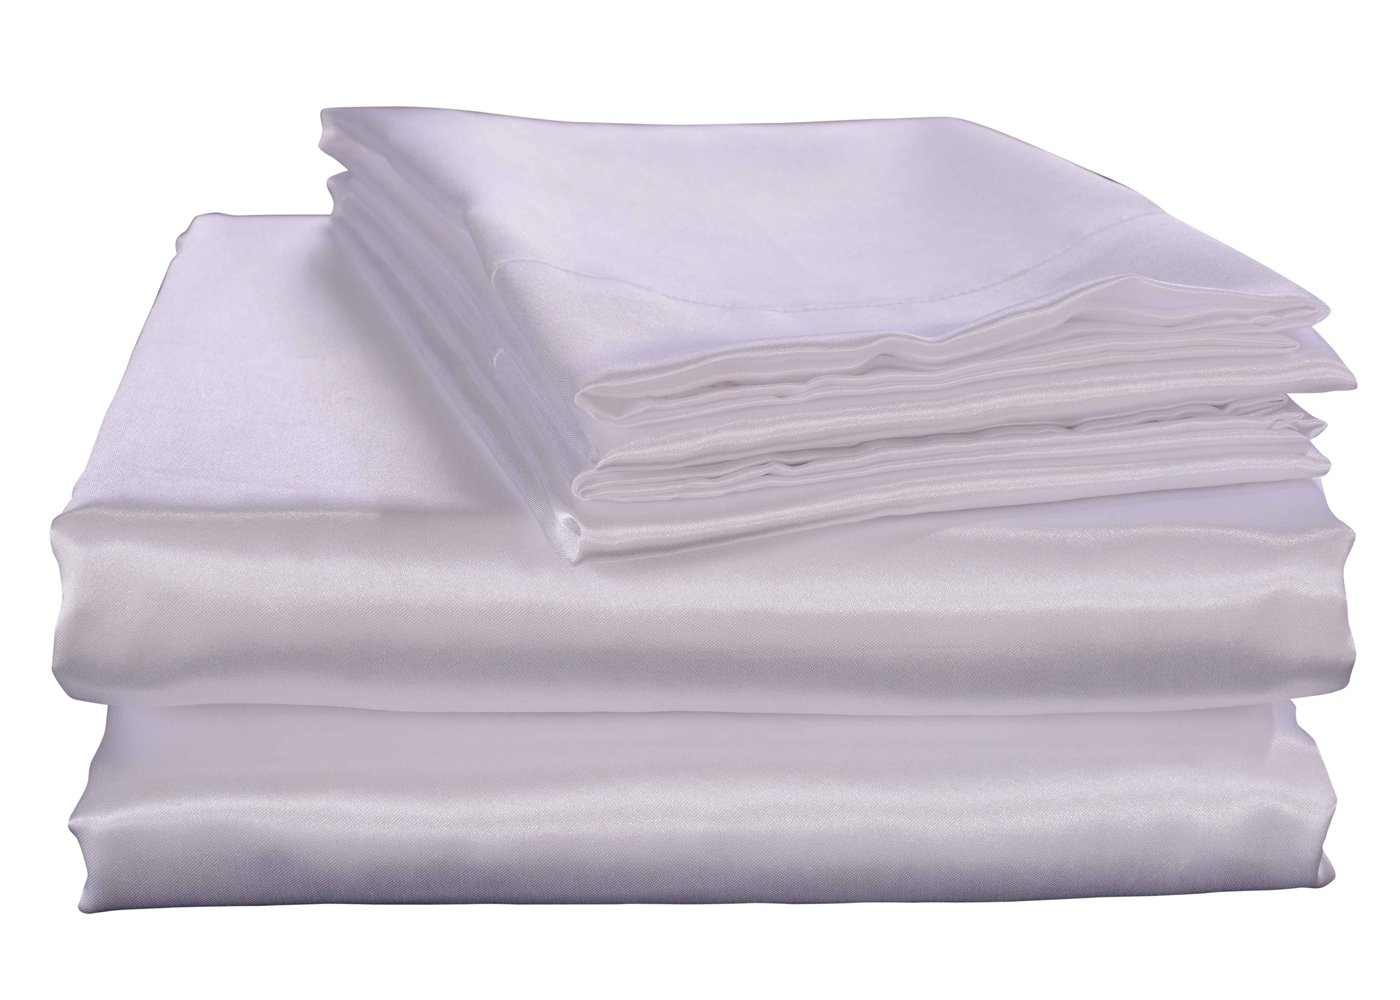 HONEYMOON HOME FASHIONS Ultra Luxury and Soft Satin Queen Bed Sheet Set - White